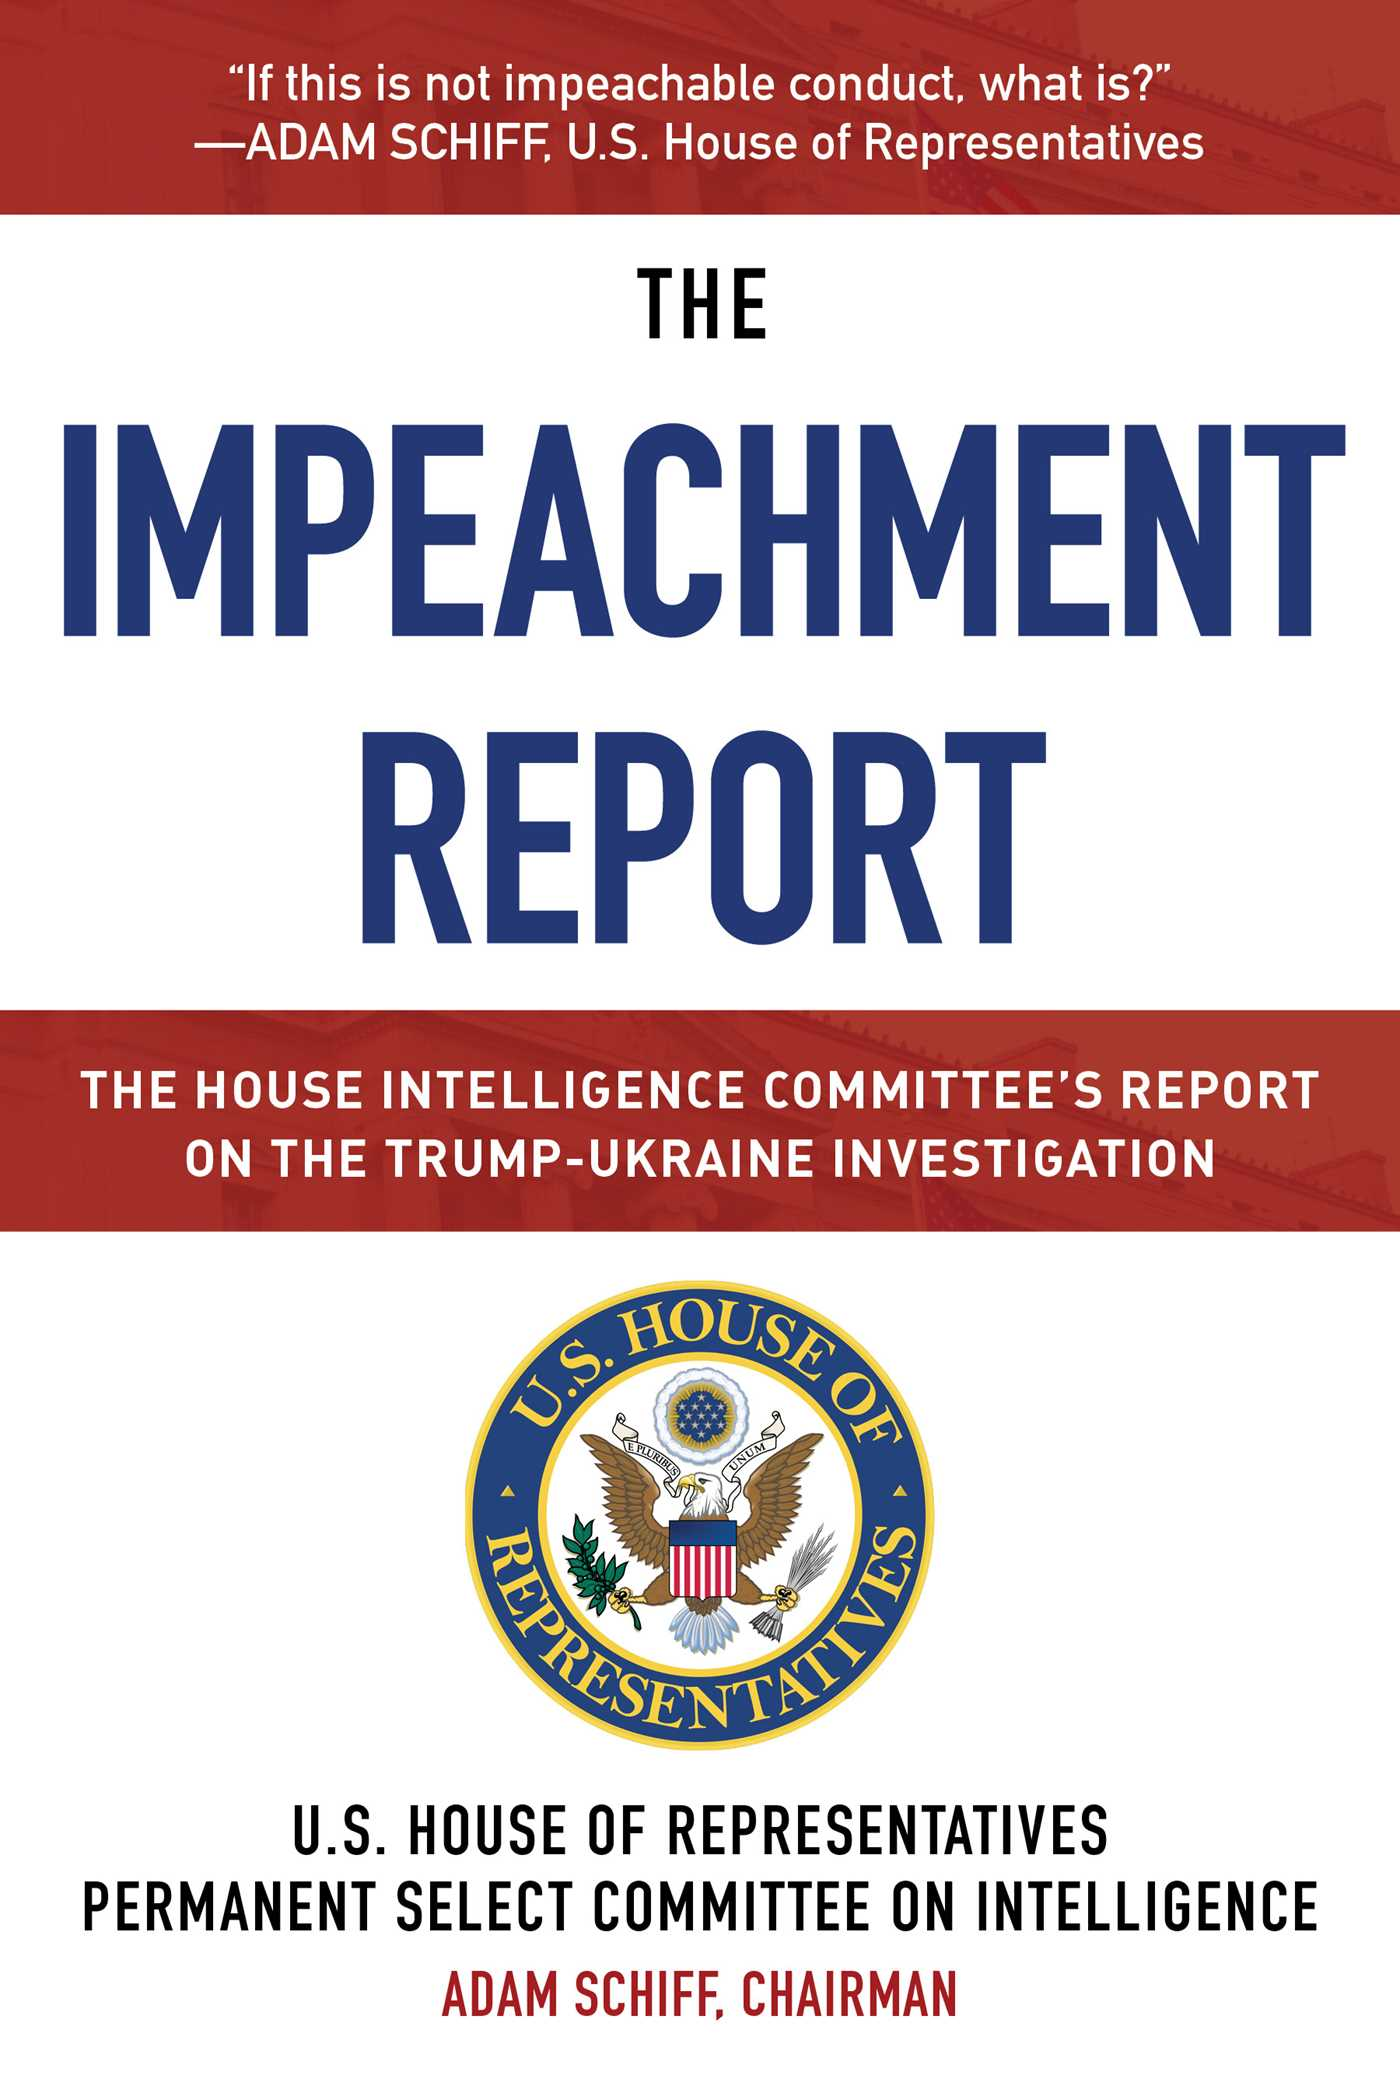 The Impeachment Report: The House Intelligence Committee's Report on the Trump-Ukraine Investigation